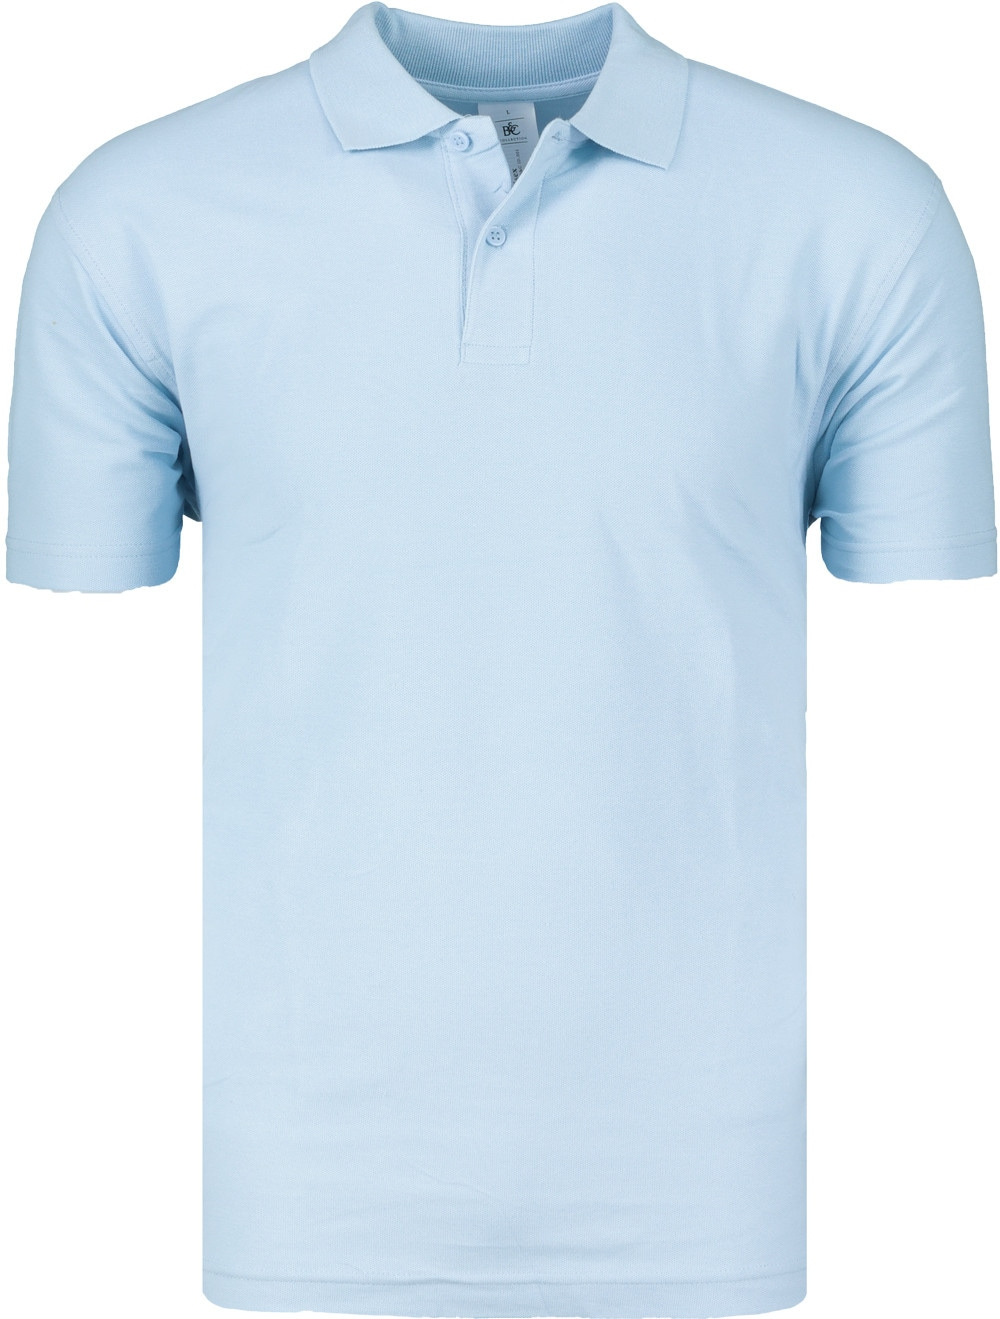 Men's polo shirt B&C Basic